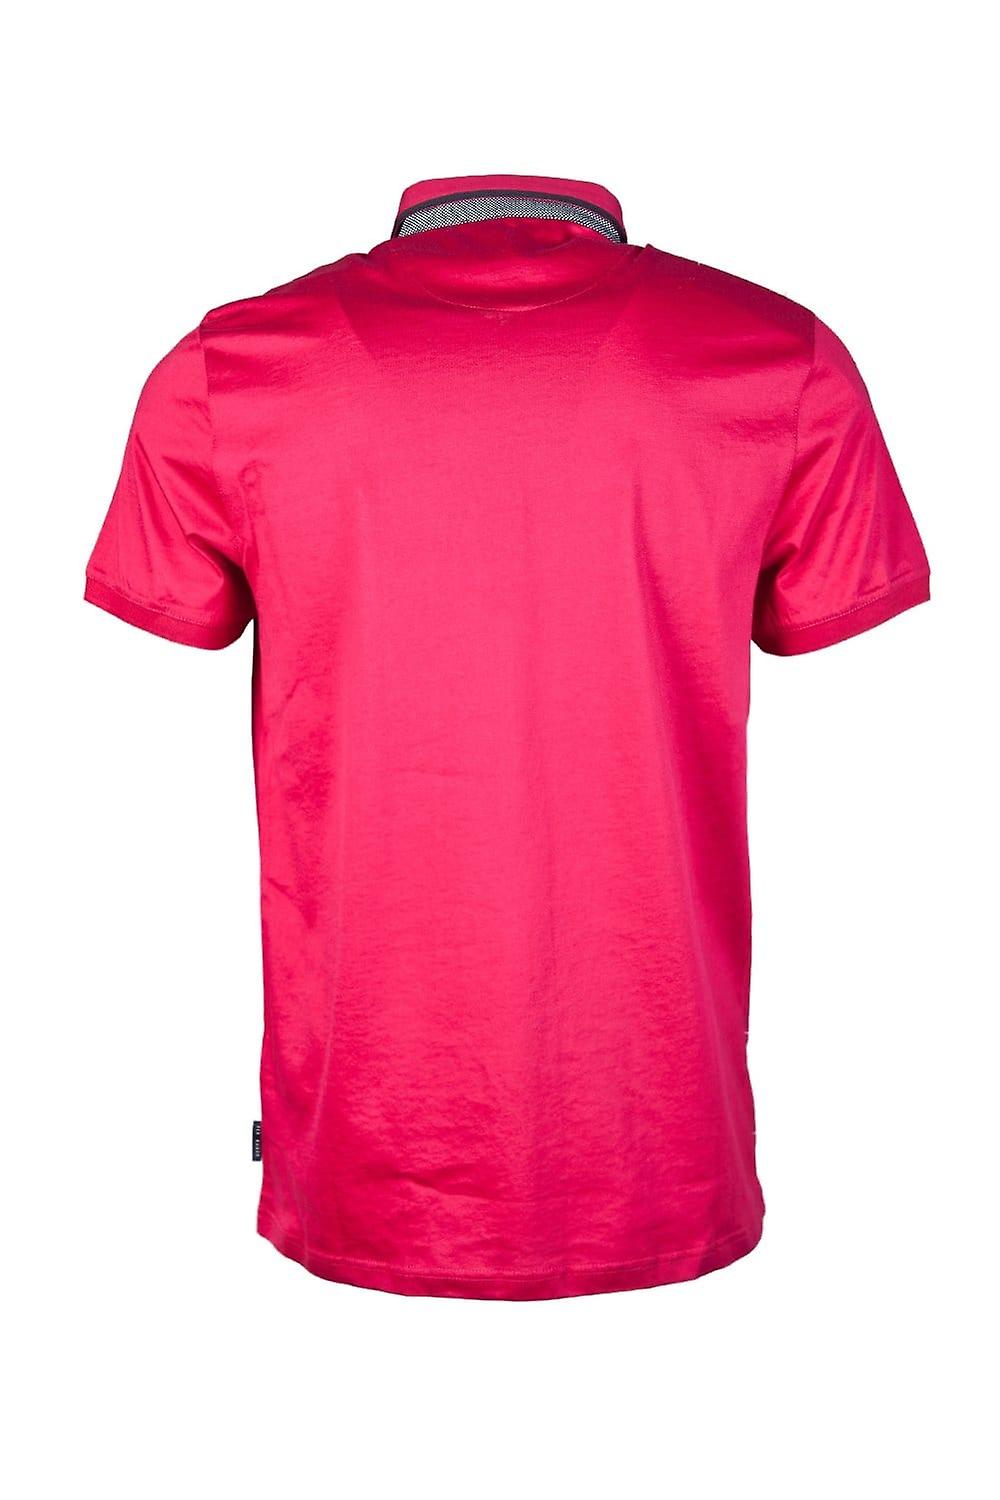 Ted Baker Ted Baker Button-Down Polo Shirt In Pink TS5M/GB33/BANNYAN-54